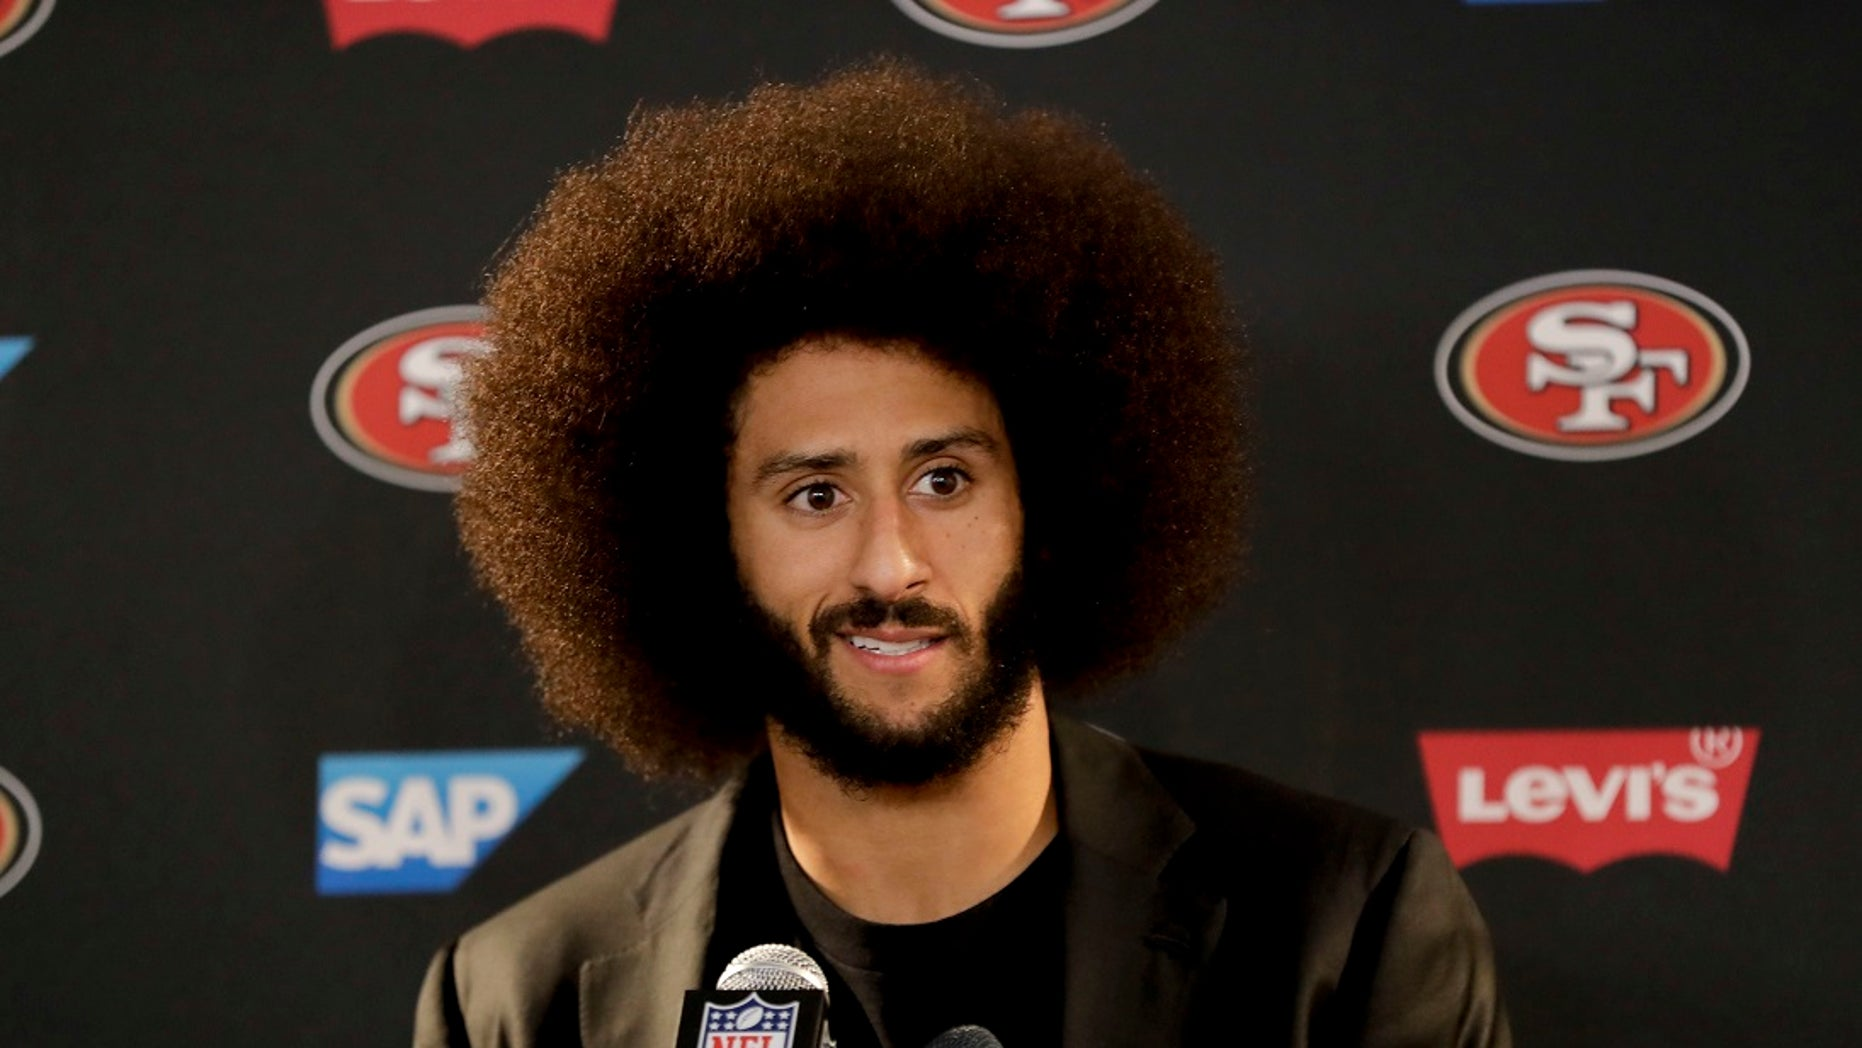 Colin Kaepernick reportedly signed a book deal with Random House worth more than $1 million.